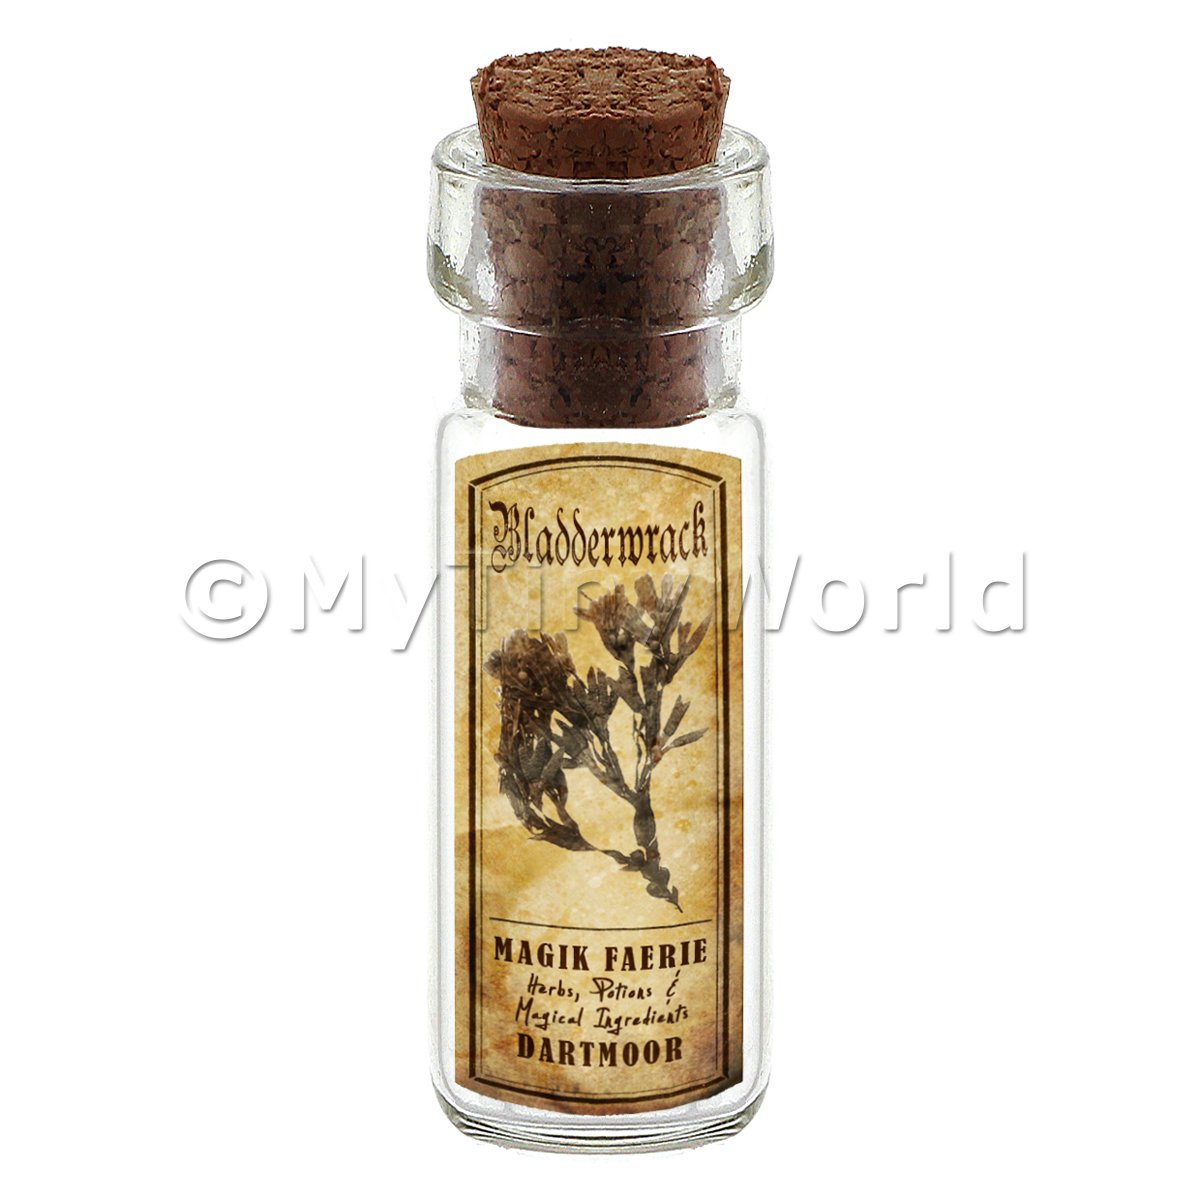 Dolls House Apothecary Bladderwrack Herb Short Sepia Label And Bottle